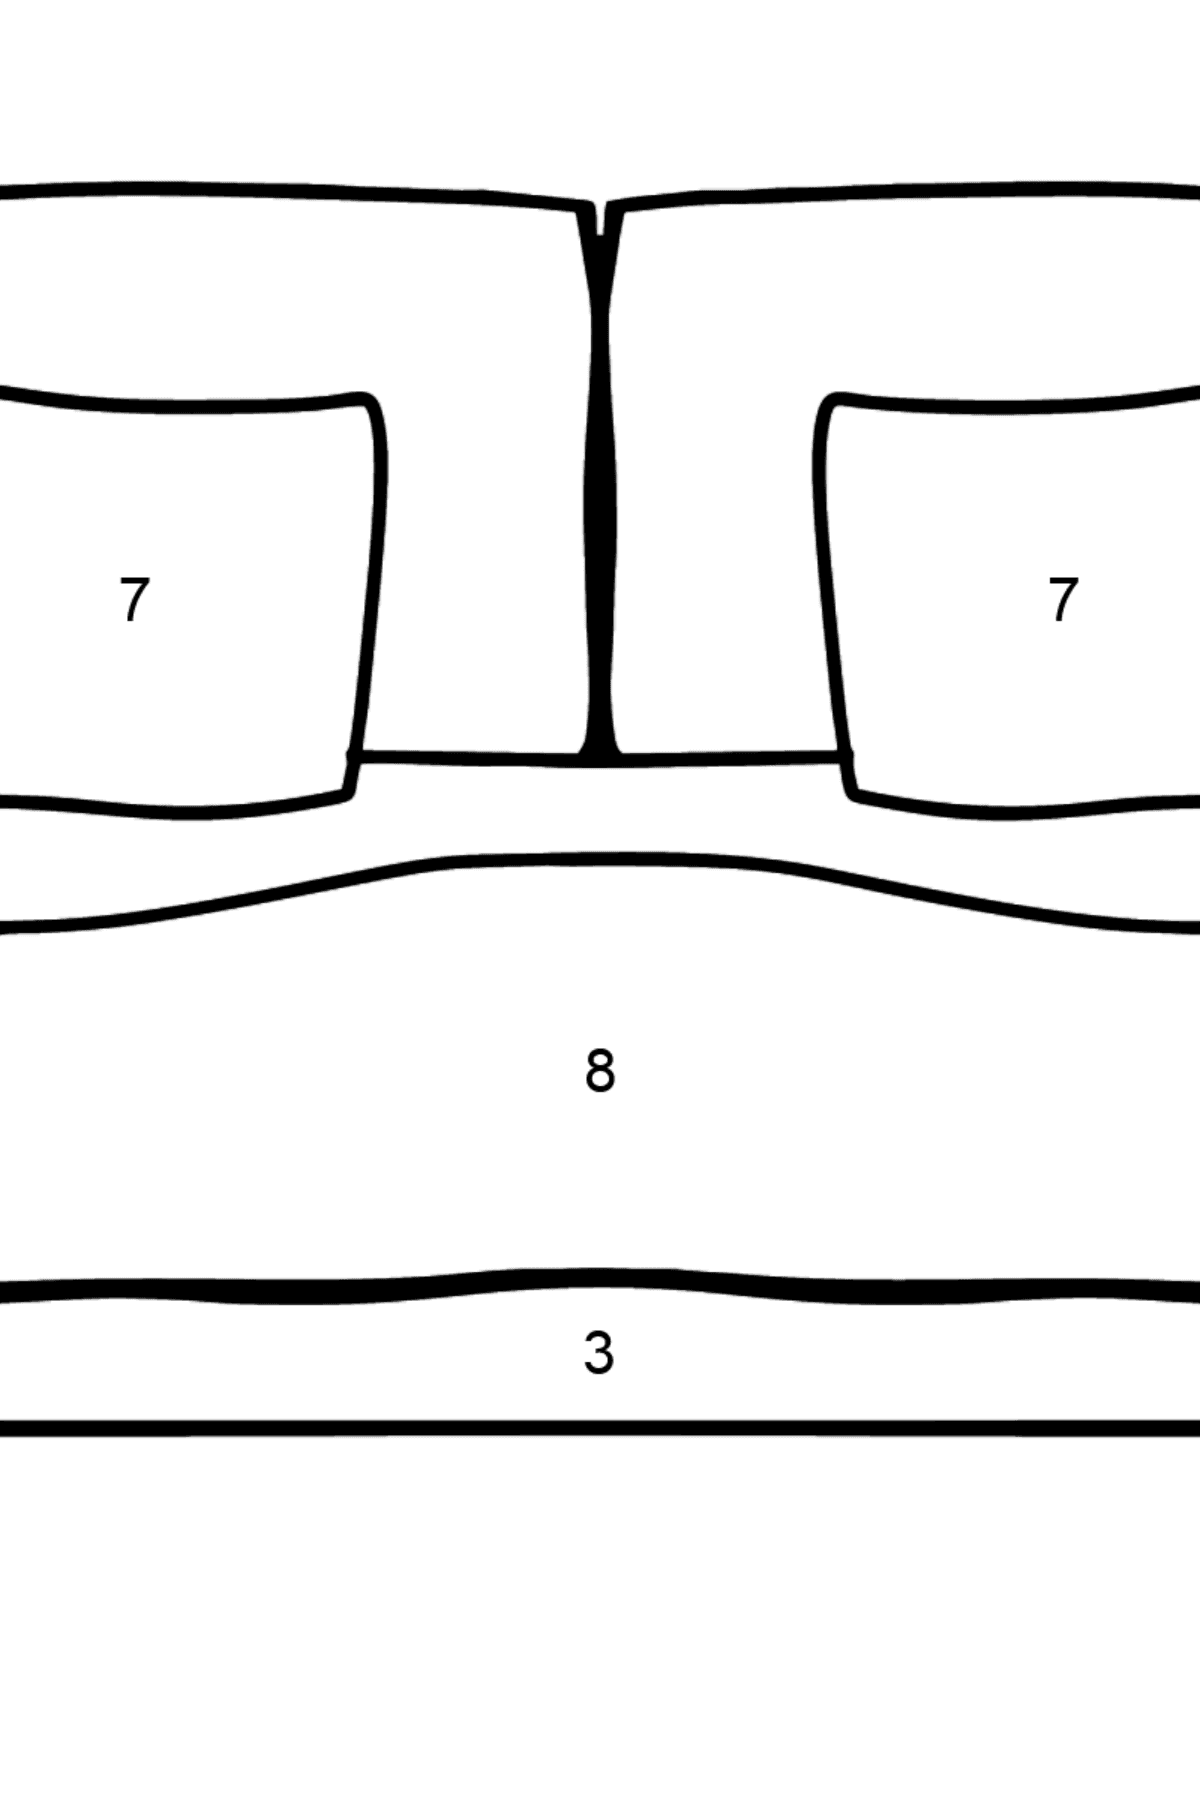 Sofa coloring page - Coloring by Numbers for Kids